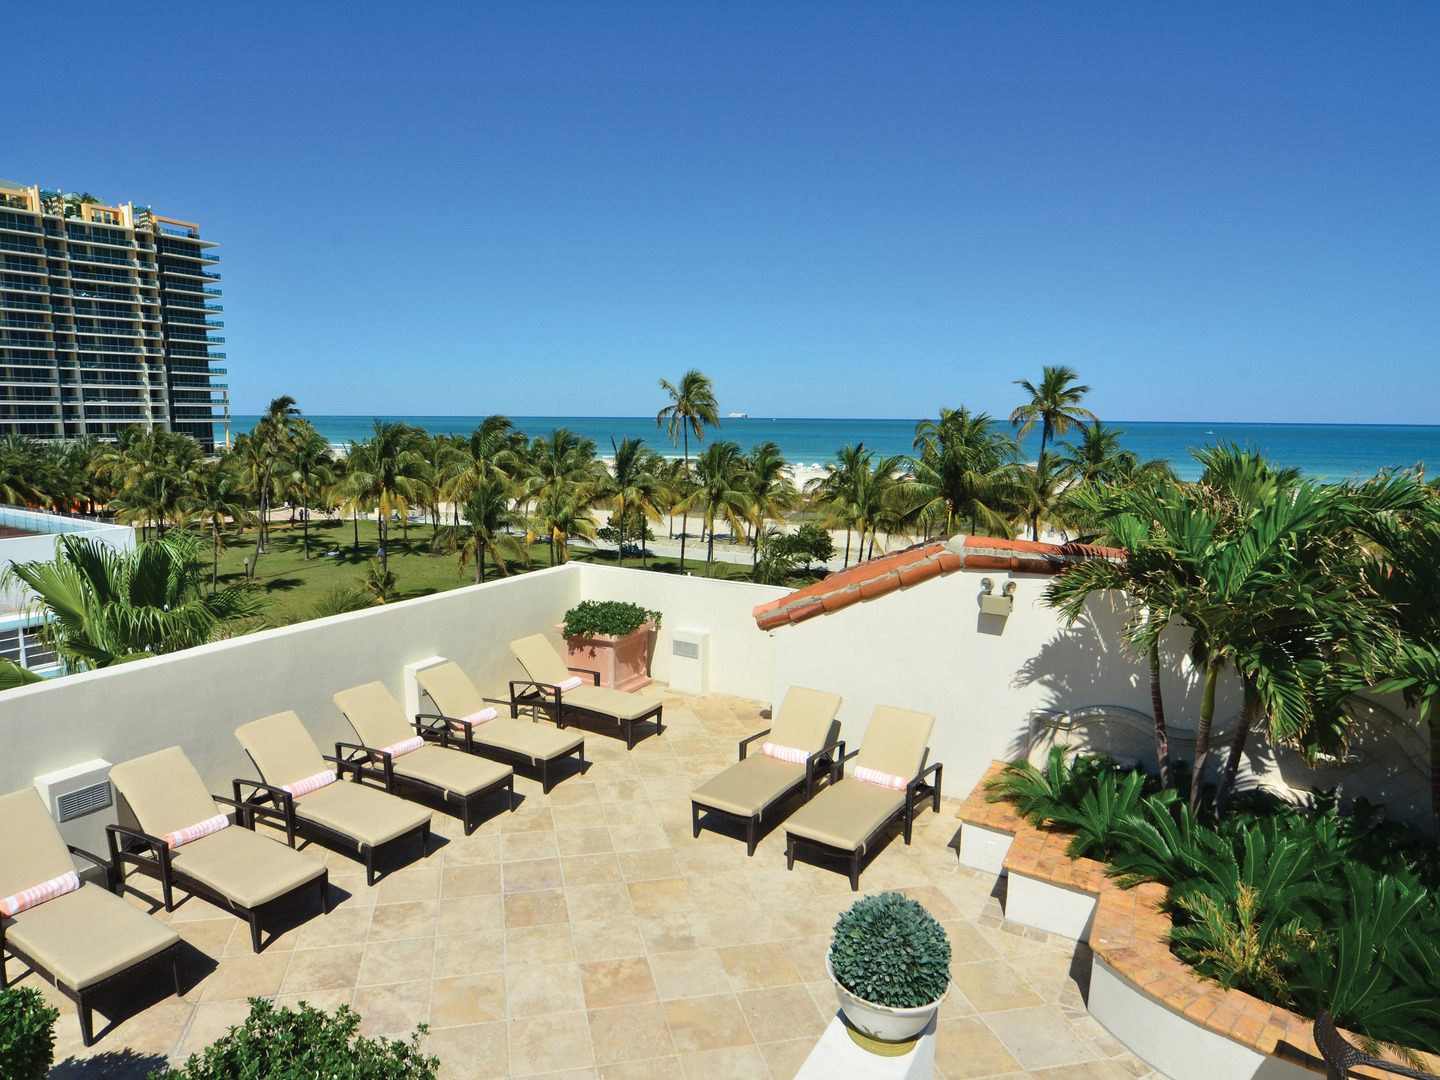 Marriott Vacation Club Pulse<span class='trademark'>®</span>, South Beach Roof Patio. Marriott Vacation Club Pulse<span class='trademark'>®</span>, South Beach is located in Miami Beach, Florida United States.